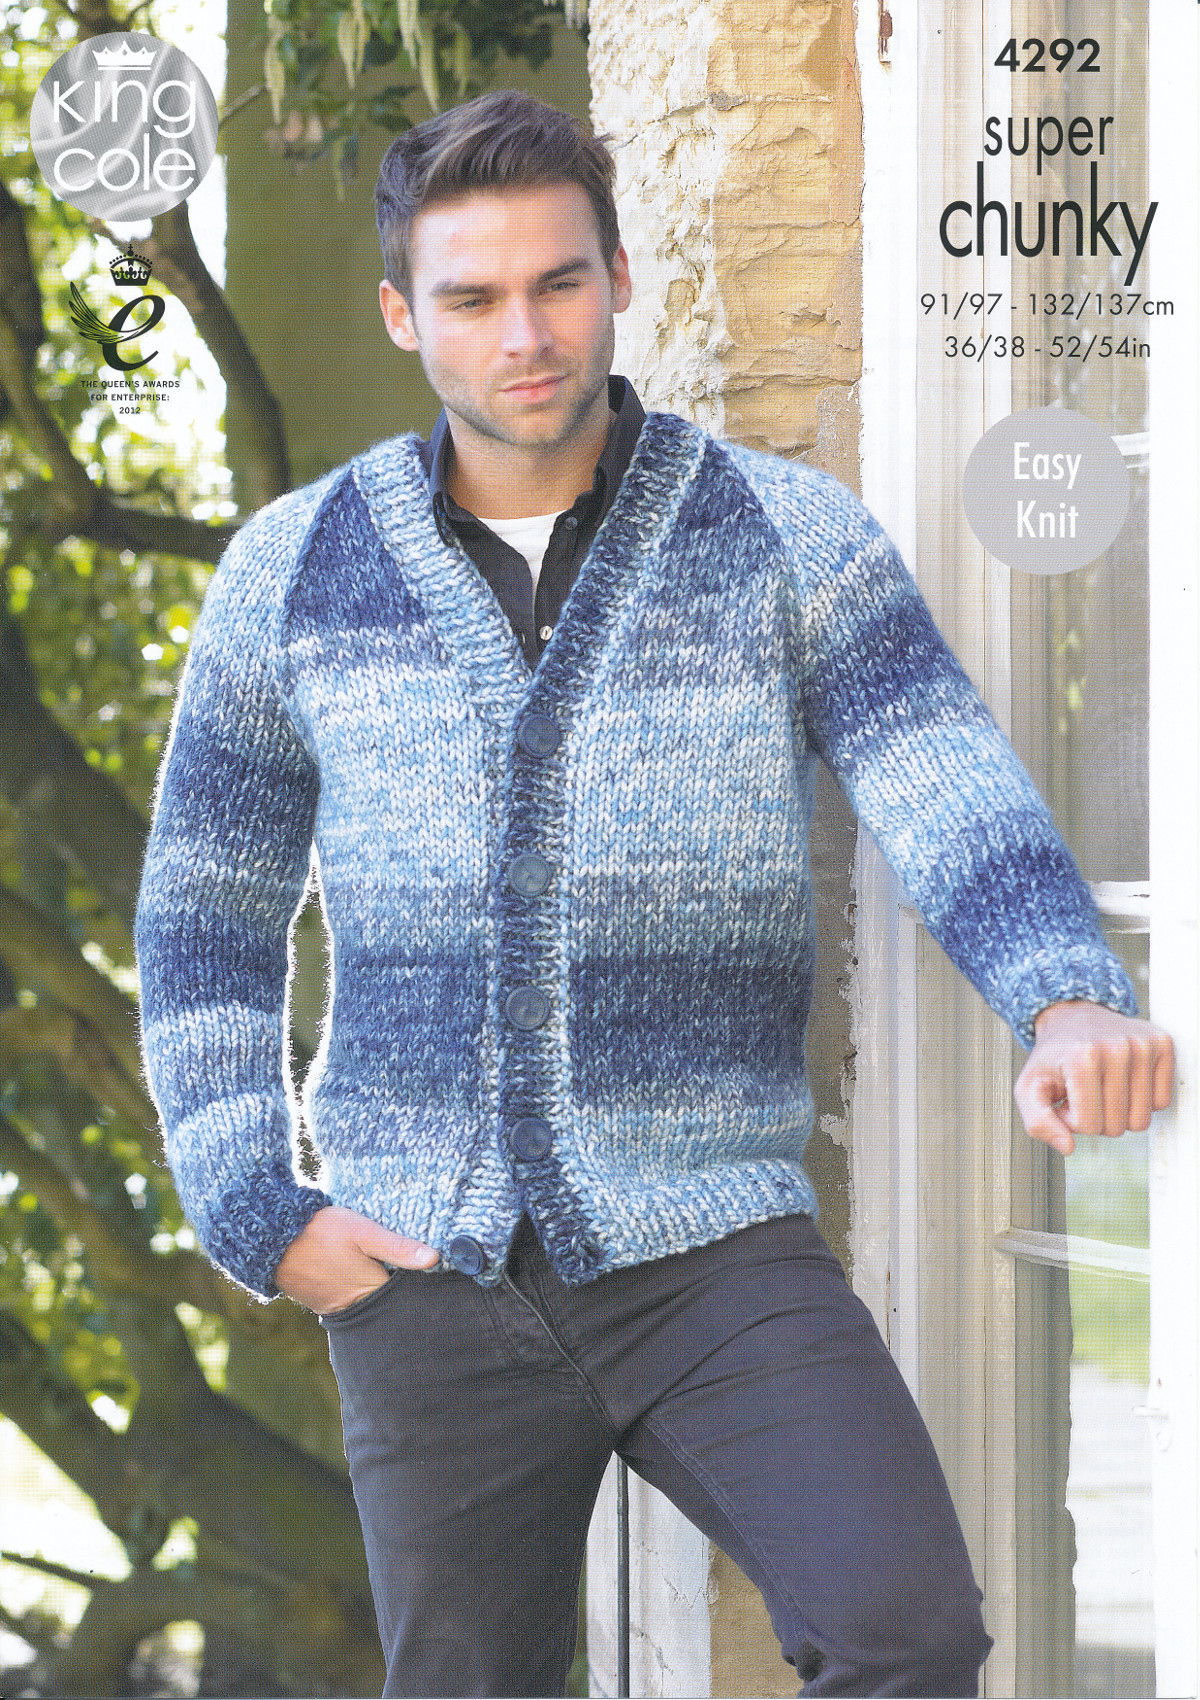 Best Of Mens Super Chunky Knitting Pattern King Cole Easy Knit Mens Patterned Cardigan Of Charming 50 Models Mens Patterned Cardigan